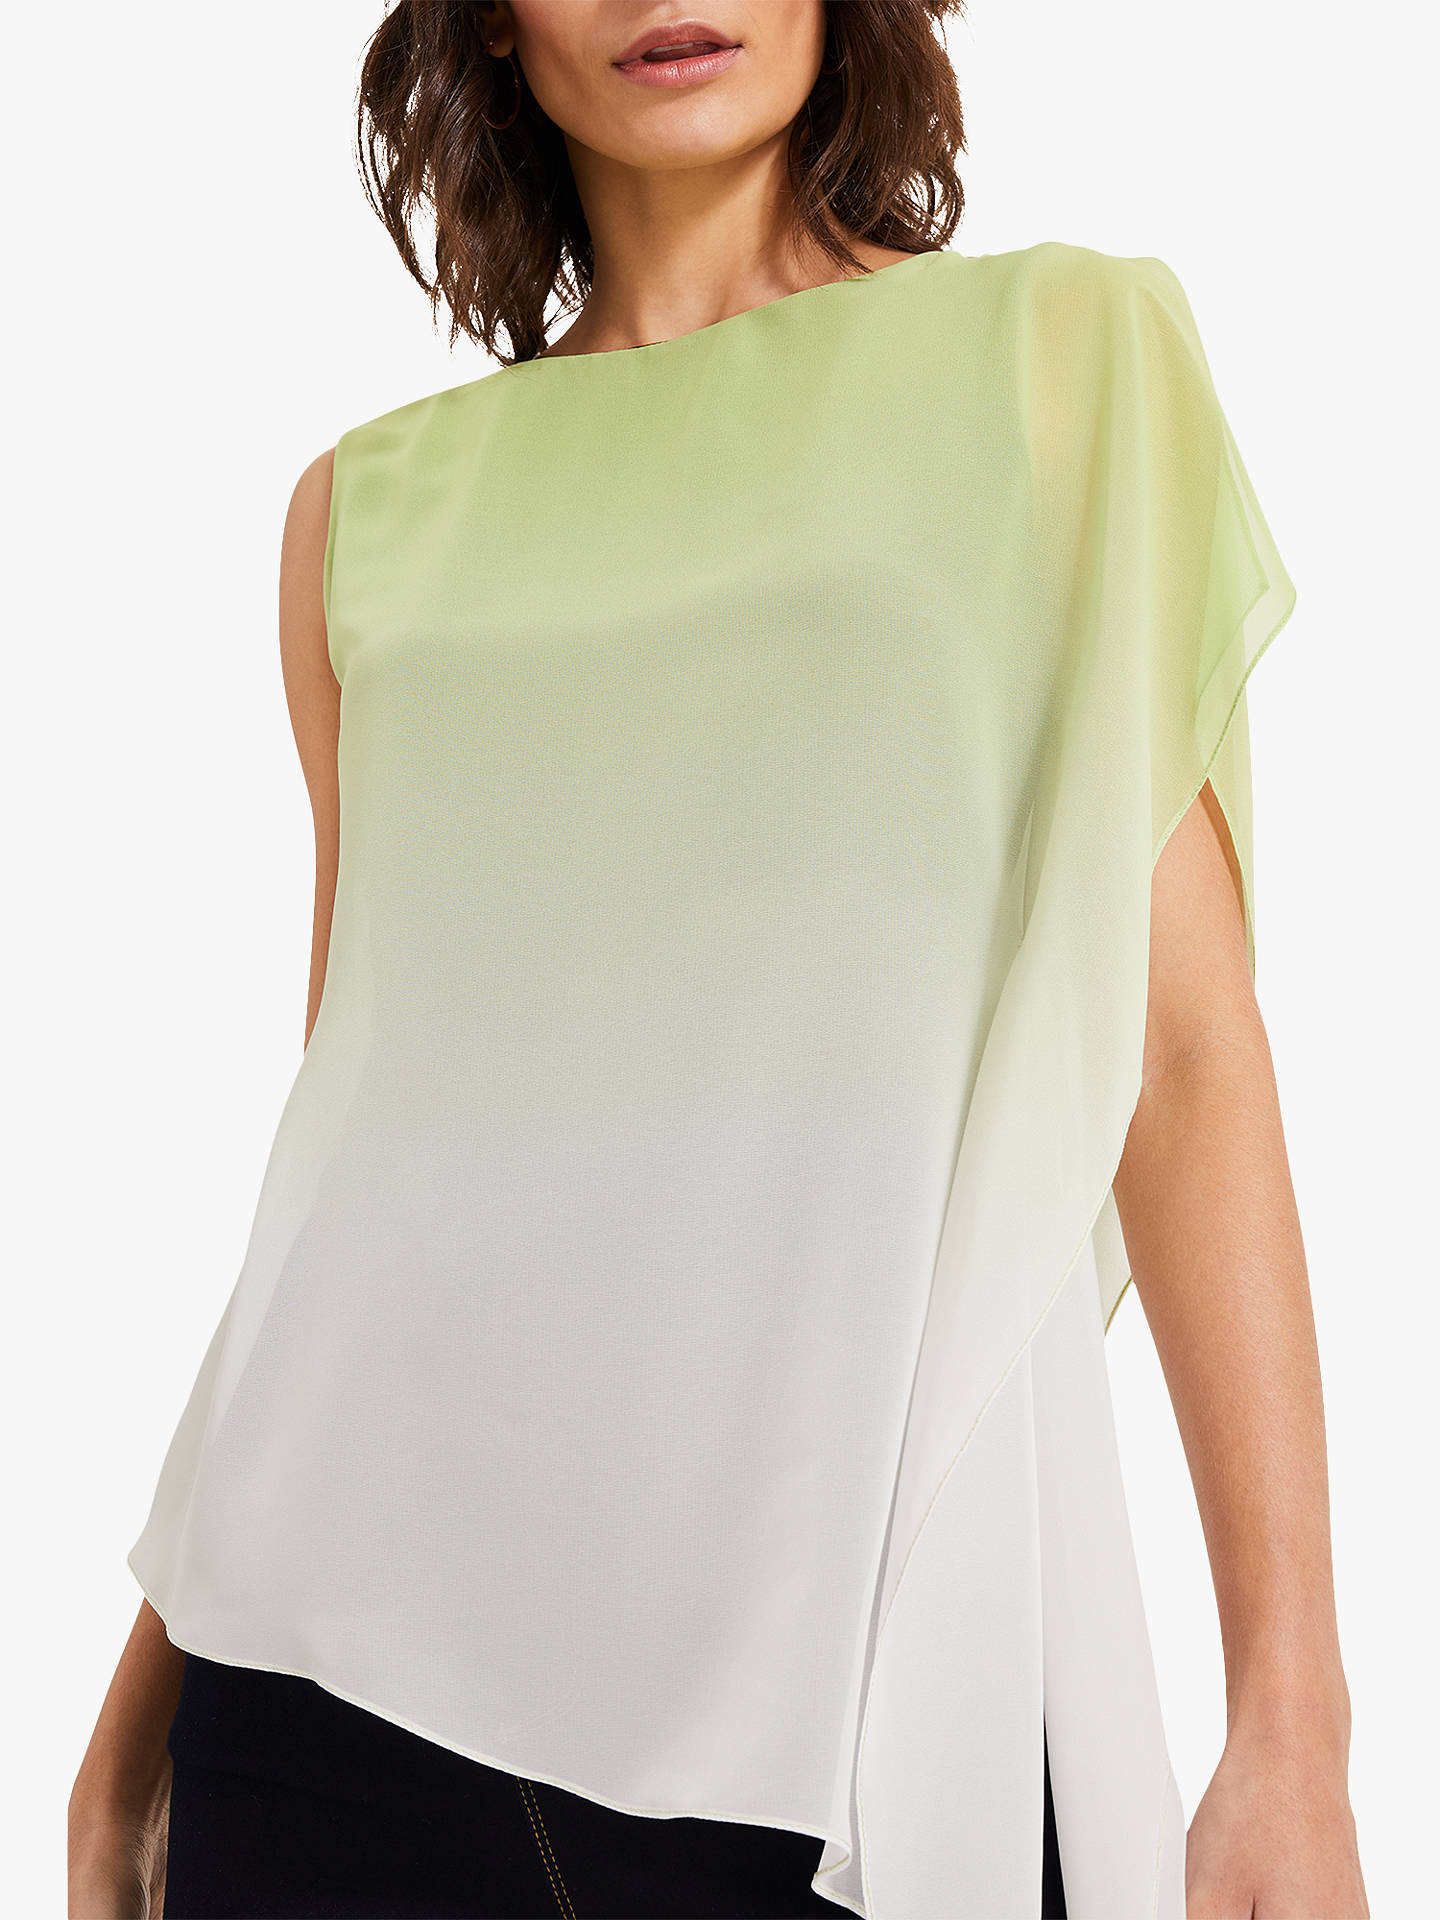 c51dfbb8 ... Buy Phase Eight Camille Ombre Chiffon Top, Lime, 8 Online at  johnlewis.com ...